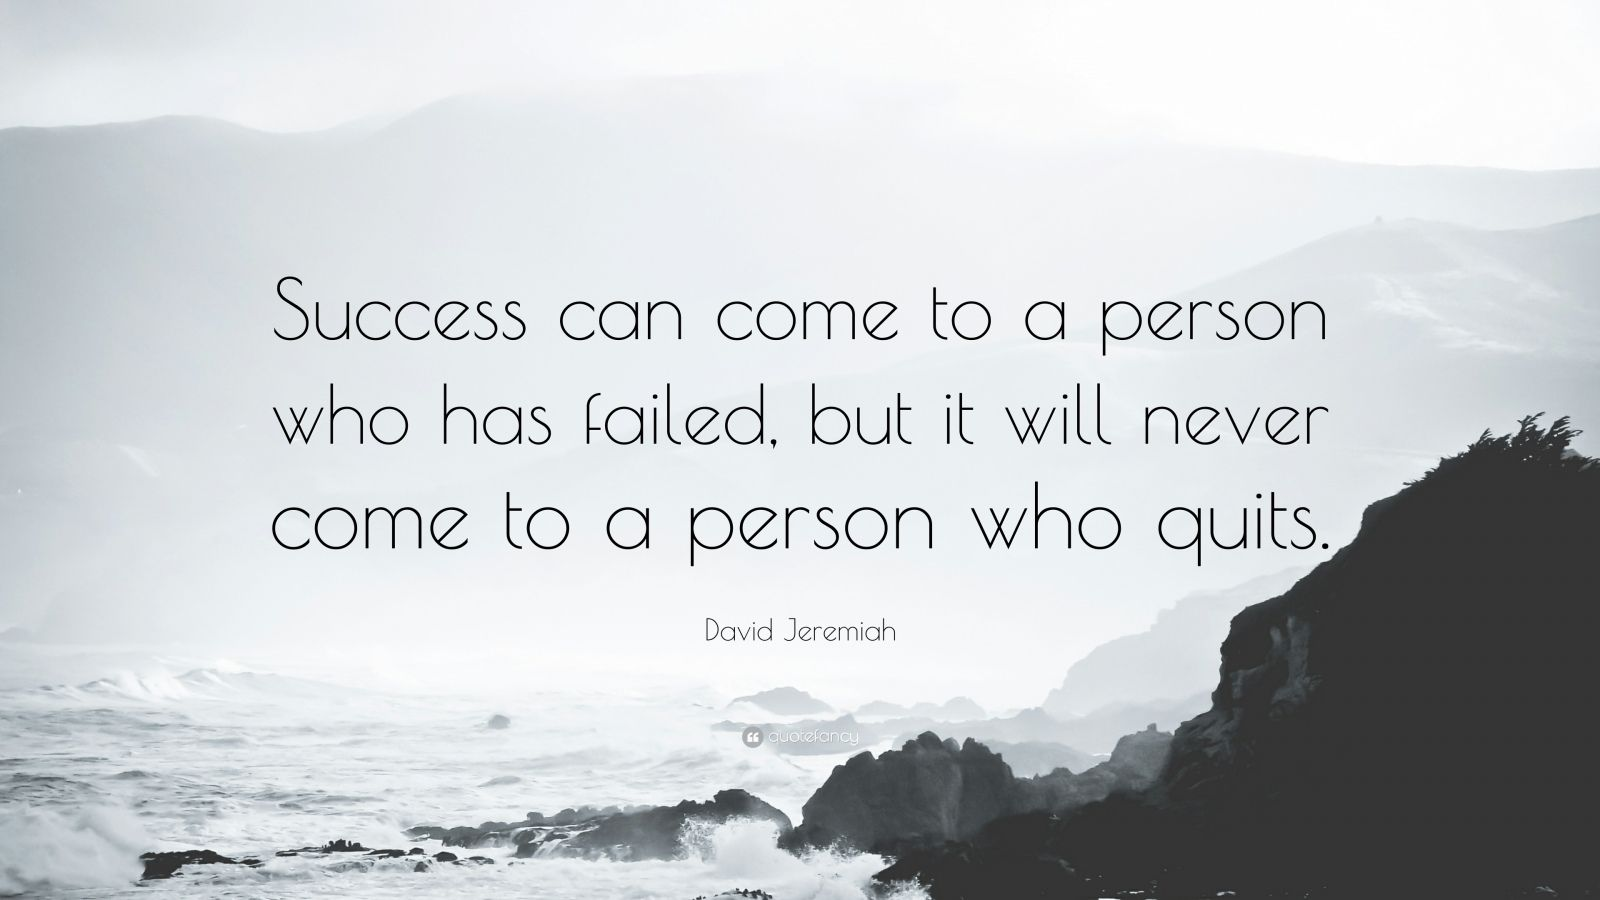 """David Jeremiah Quote: """"Success can come to a person who has failed, but it will never come to a person who quits."""""""